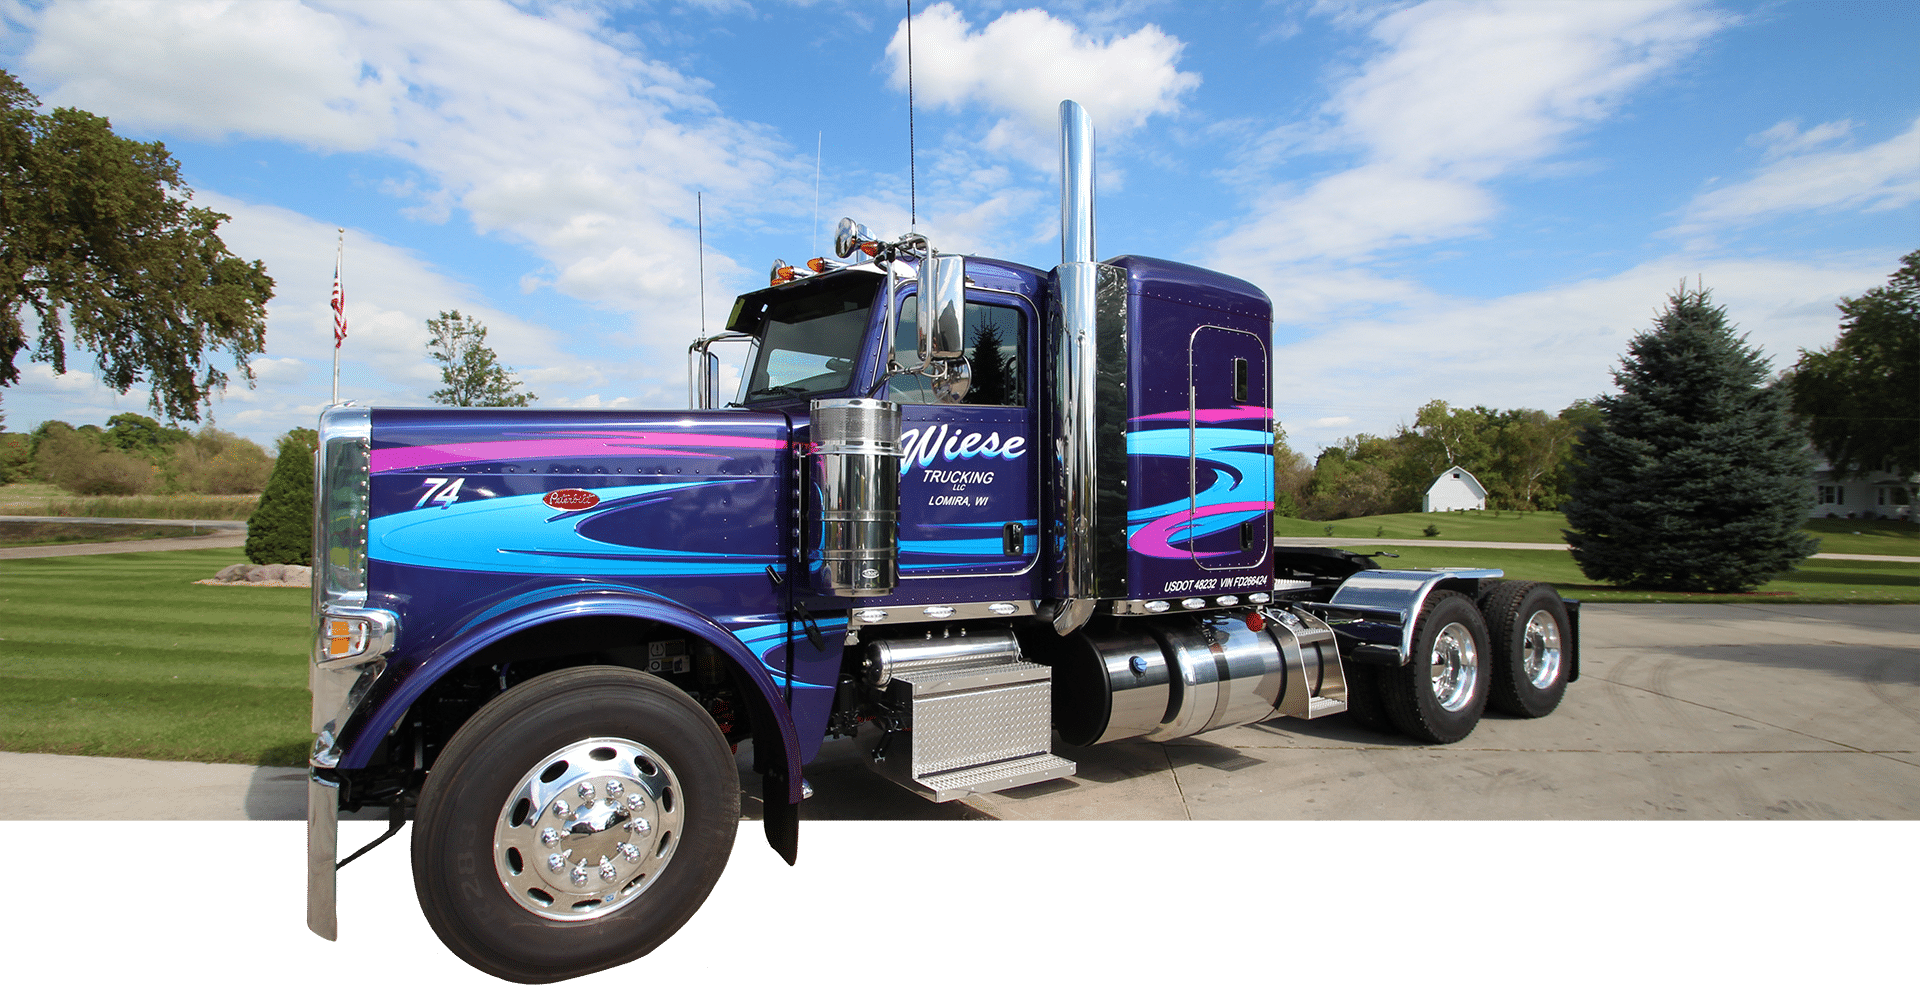 Wiese Trucking truck lettering picture portfolio.